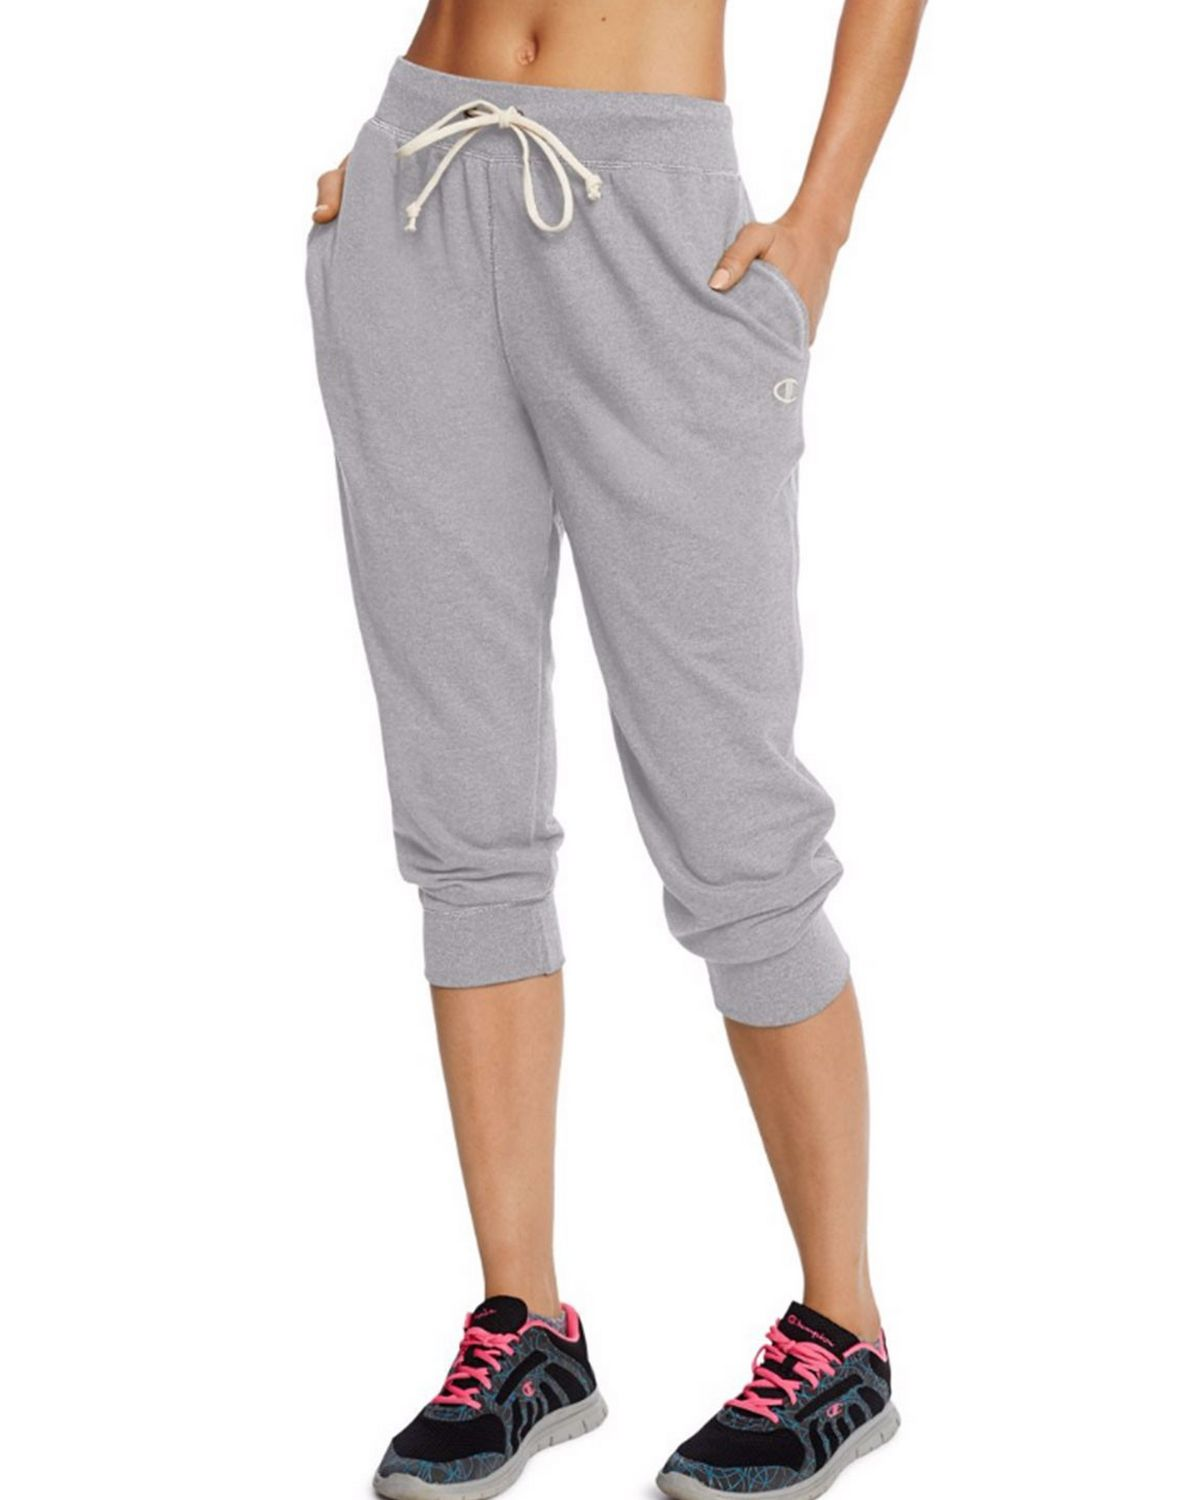 Champion M0945 Womens French Jogger Capris - Oxford Grey Heather - XL M0945